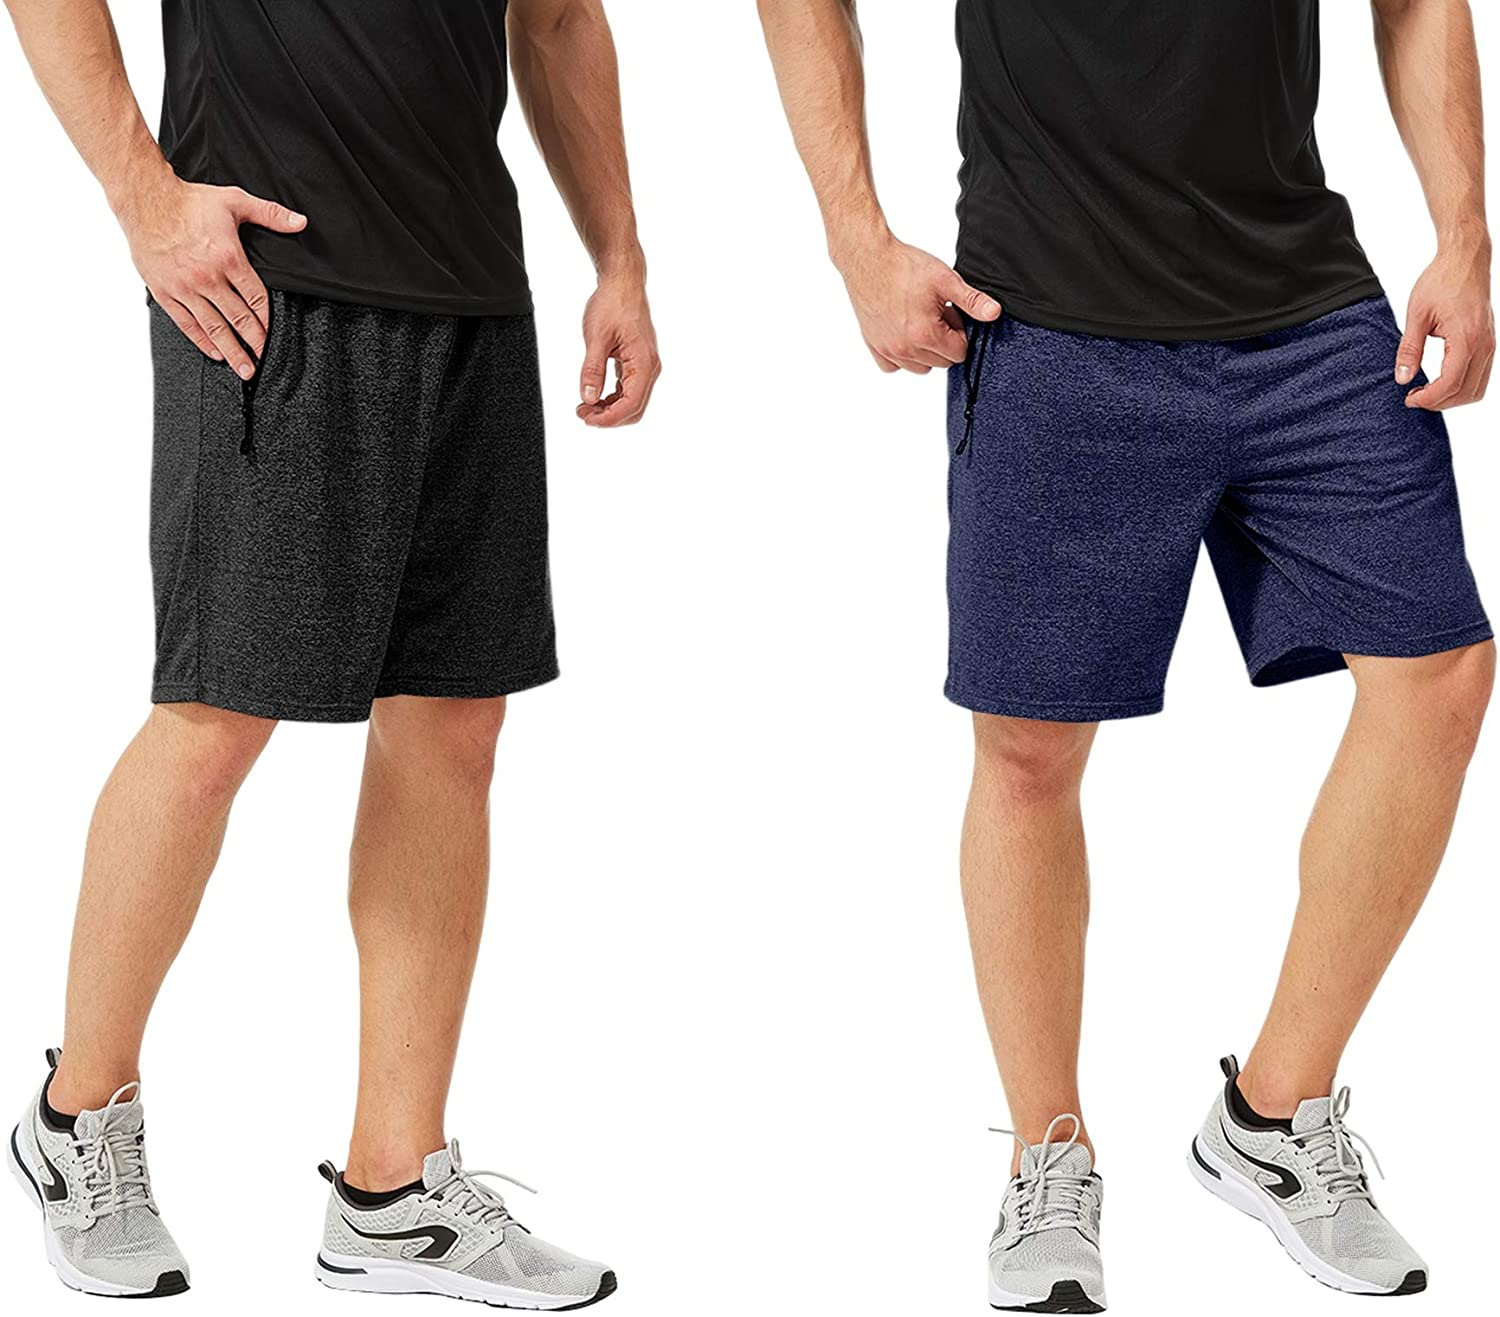 2pcs Set Athletic Shorts with Quick Dry Stretch Fabric TEXFIT Mens 2-Pack Gym Shorts with Zipper Pockets